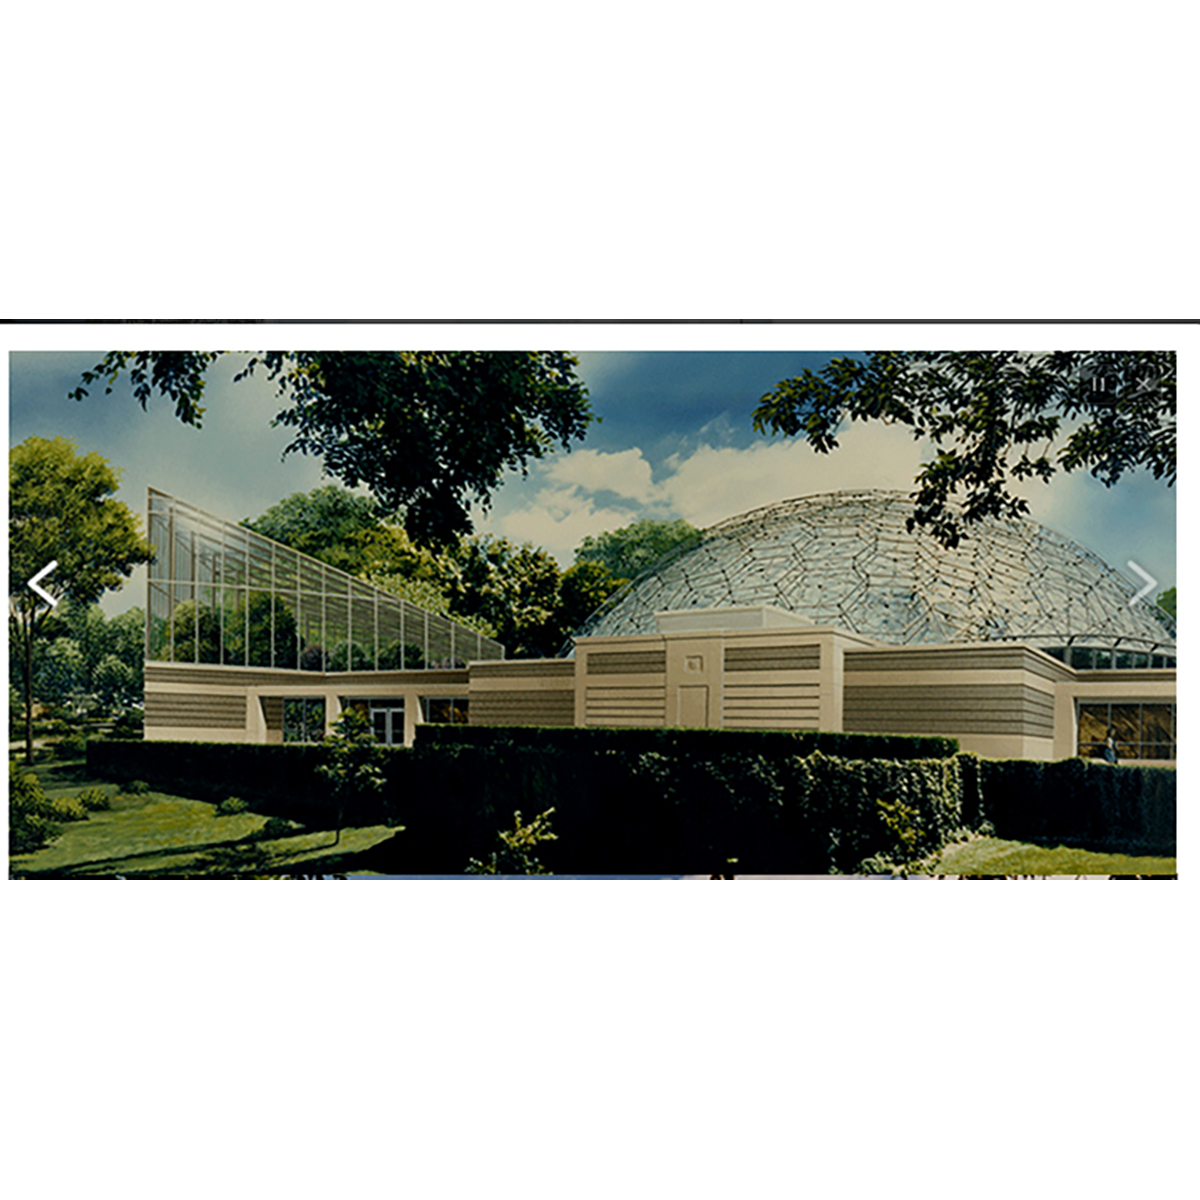 13-climatron-after-tiff